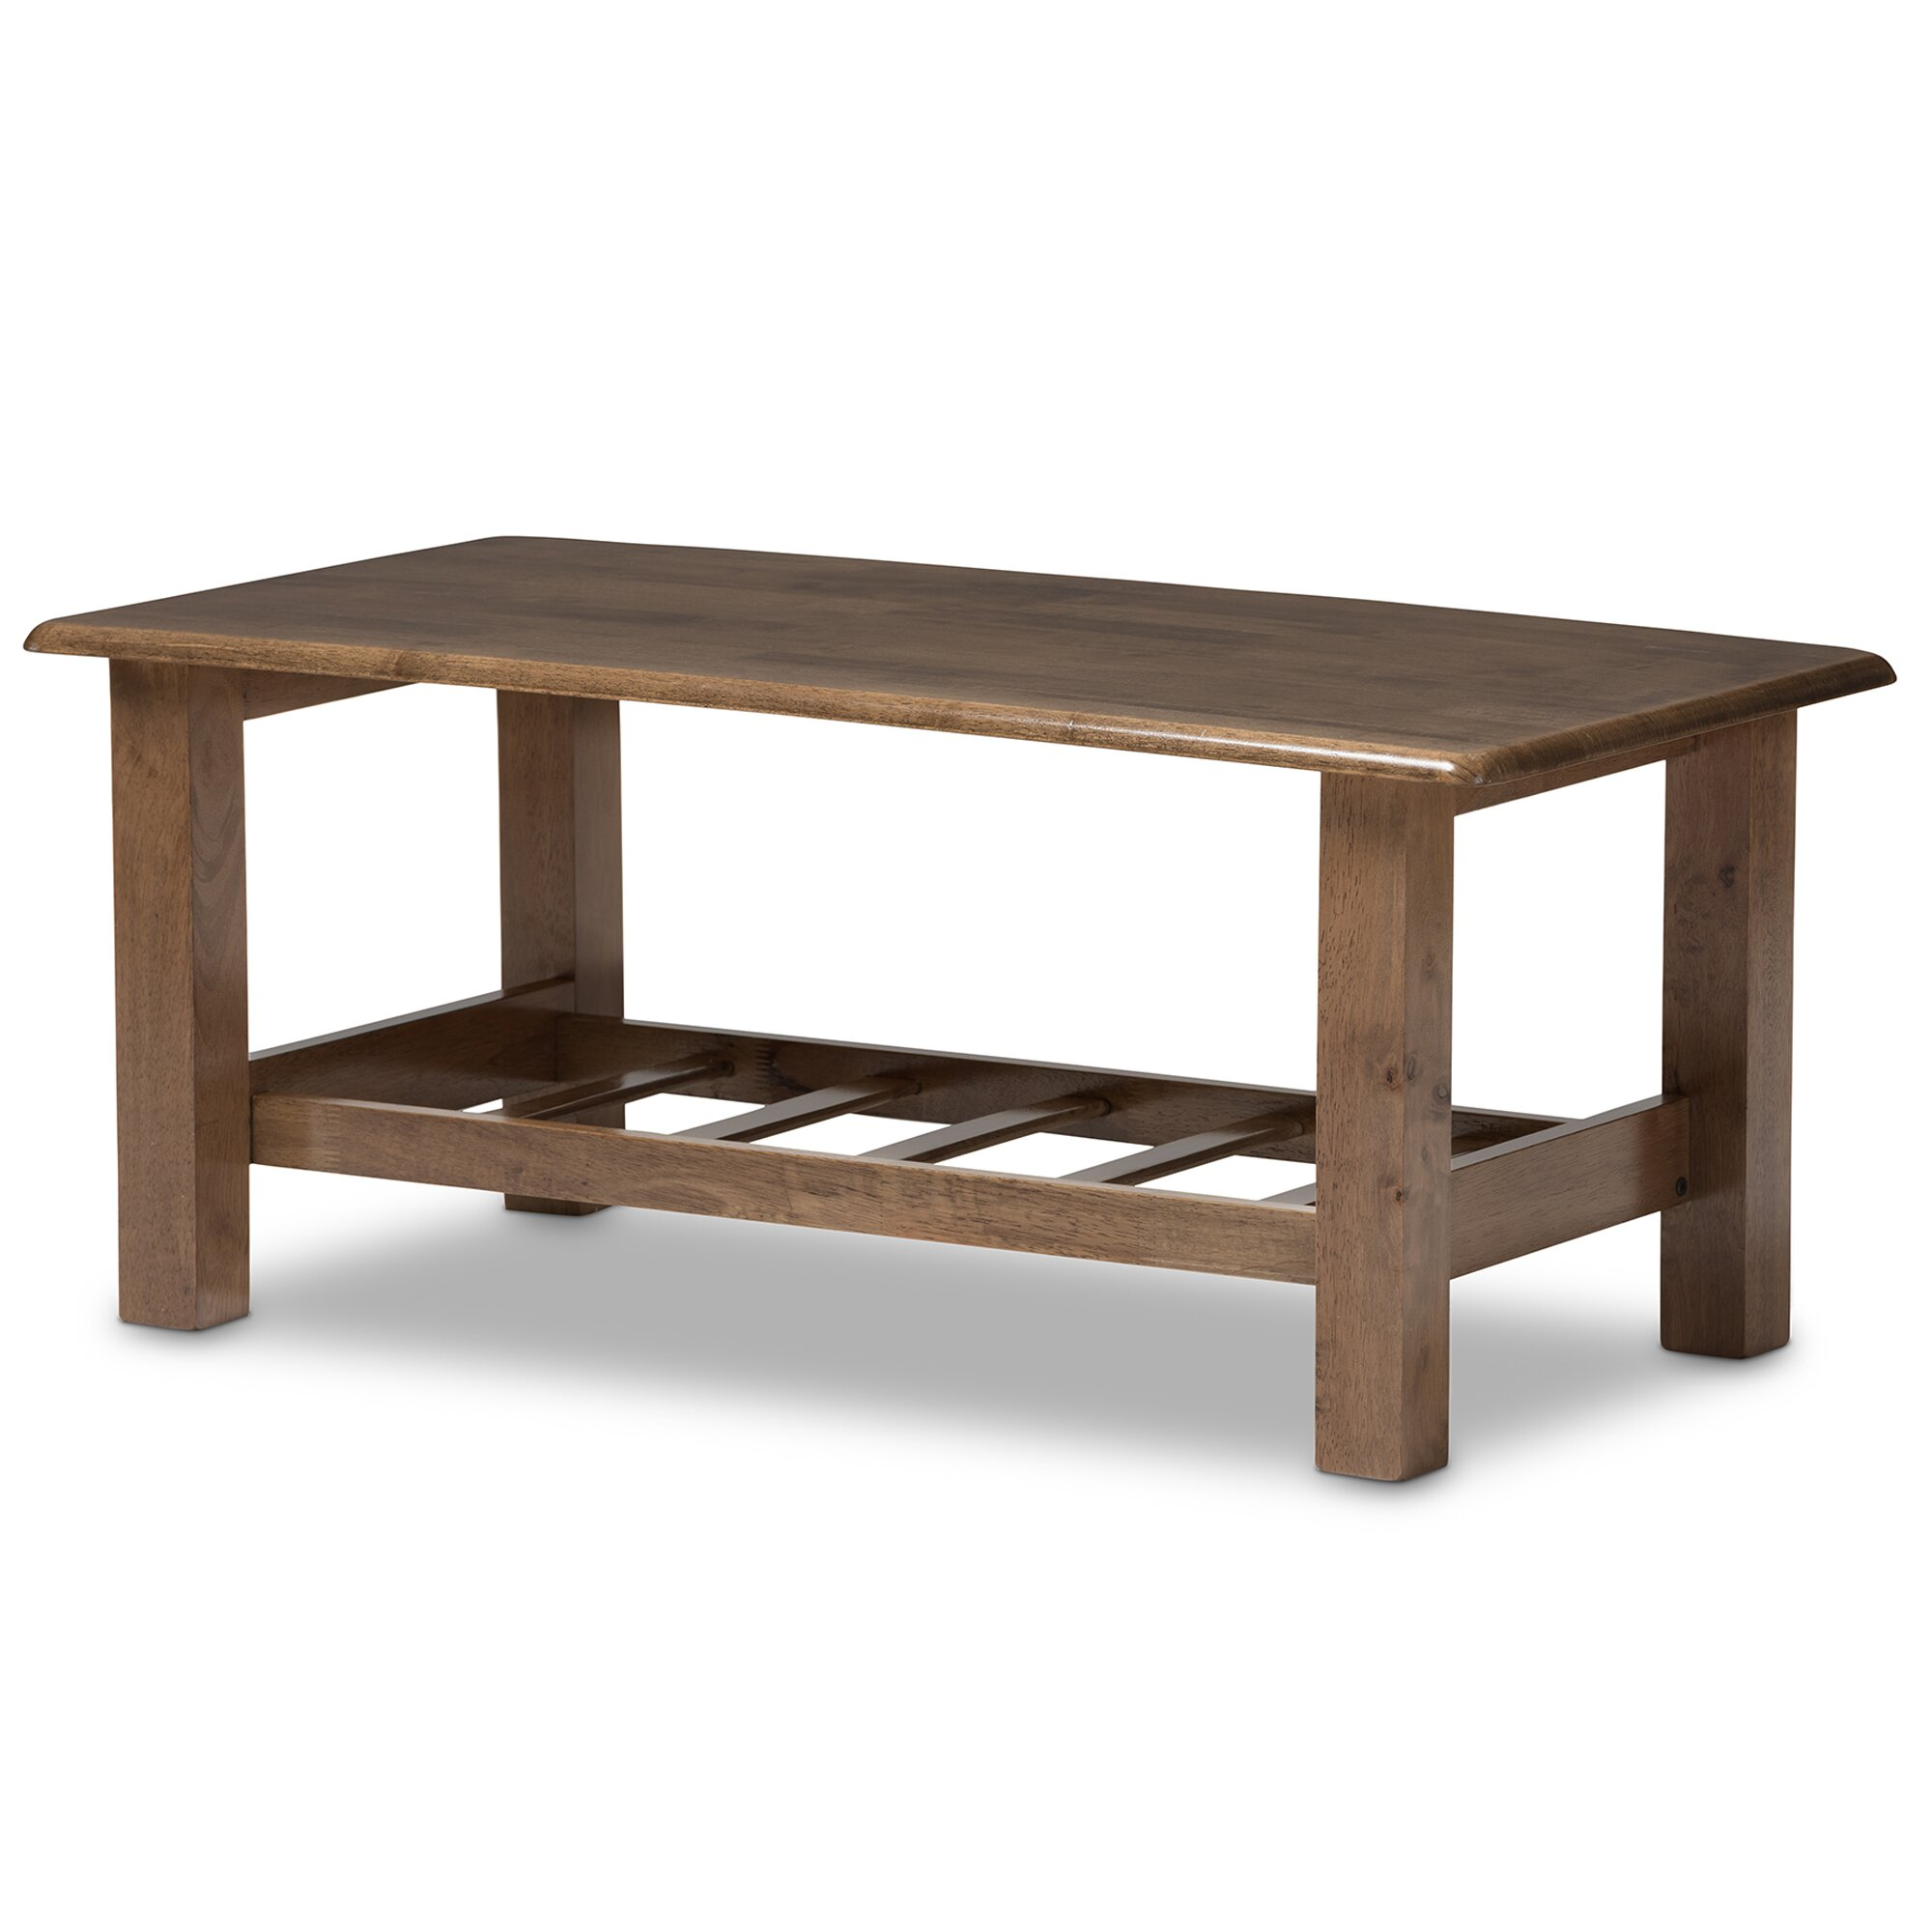 Https Www Wayfair Ca Wholesale Interiors Baxton Studio Coffee Table Whi7509 Html